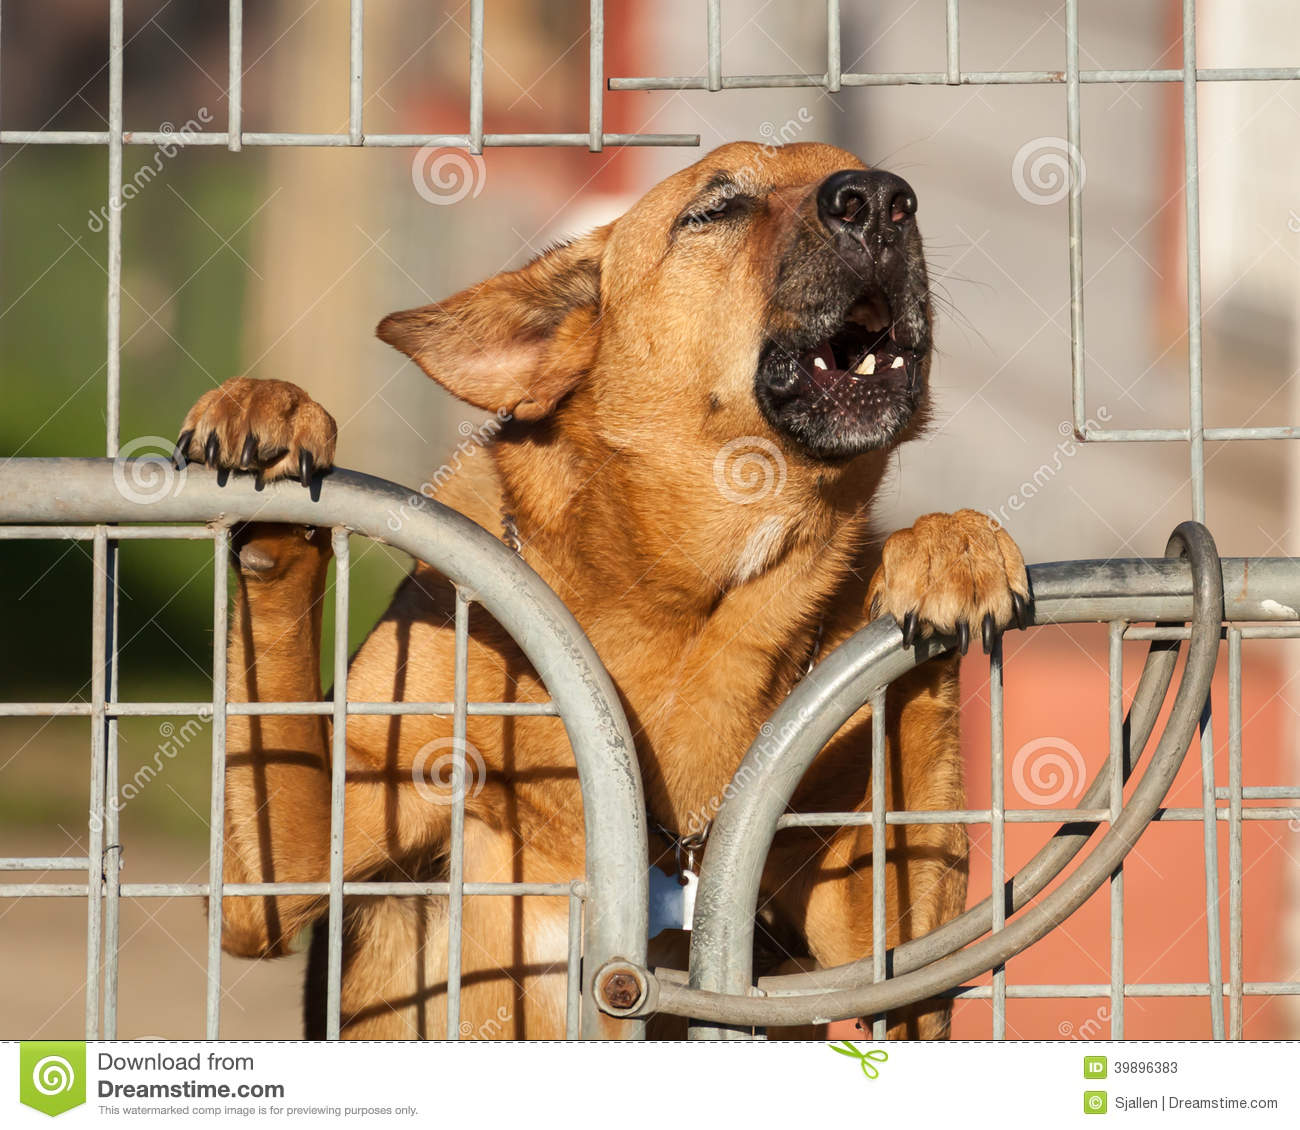 Guard Dog Barking a Warning Behind a Wire Fence